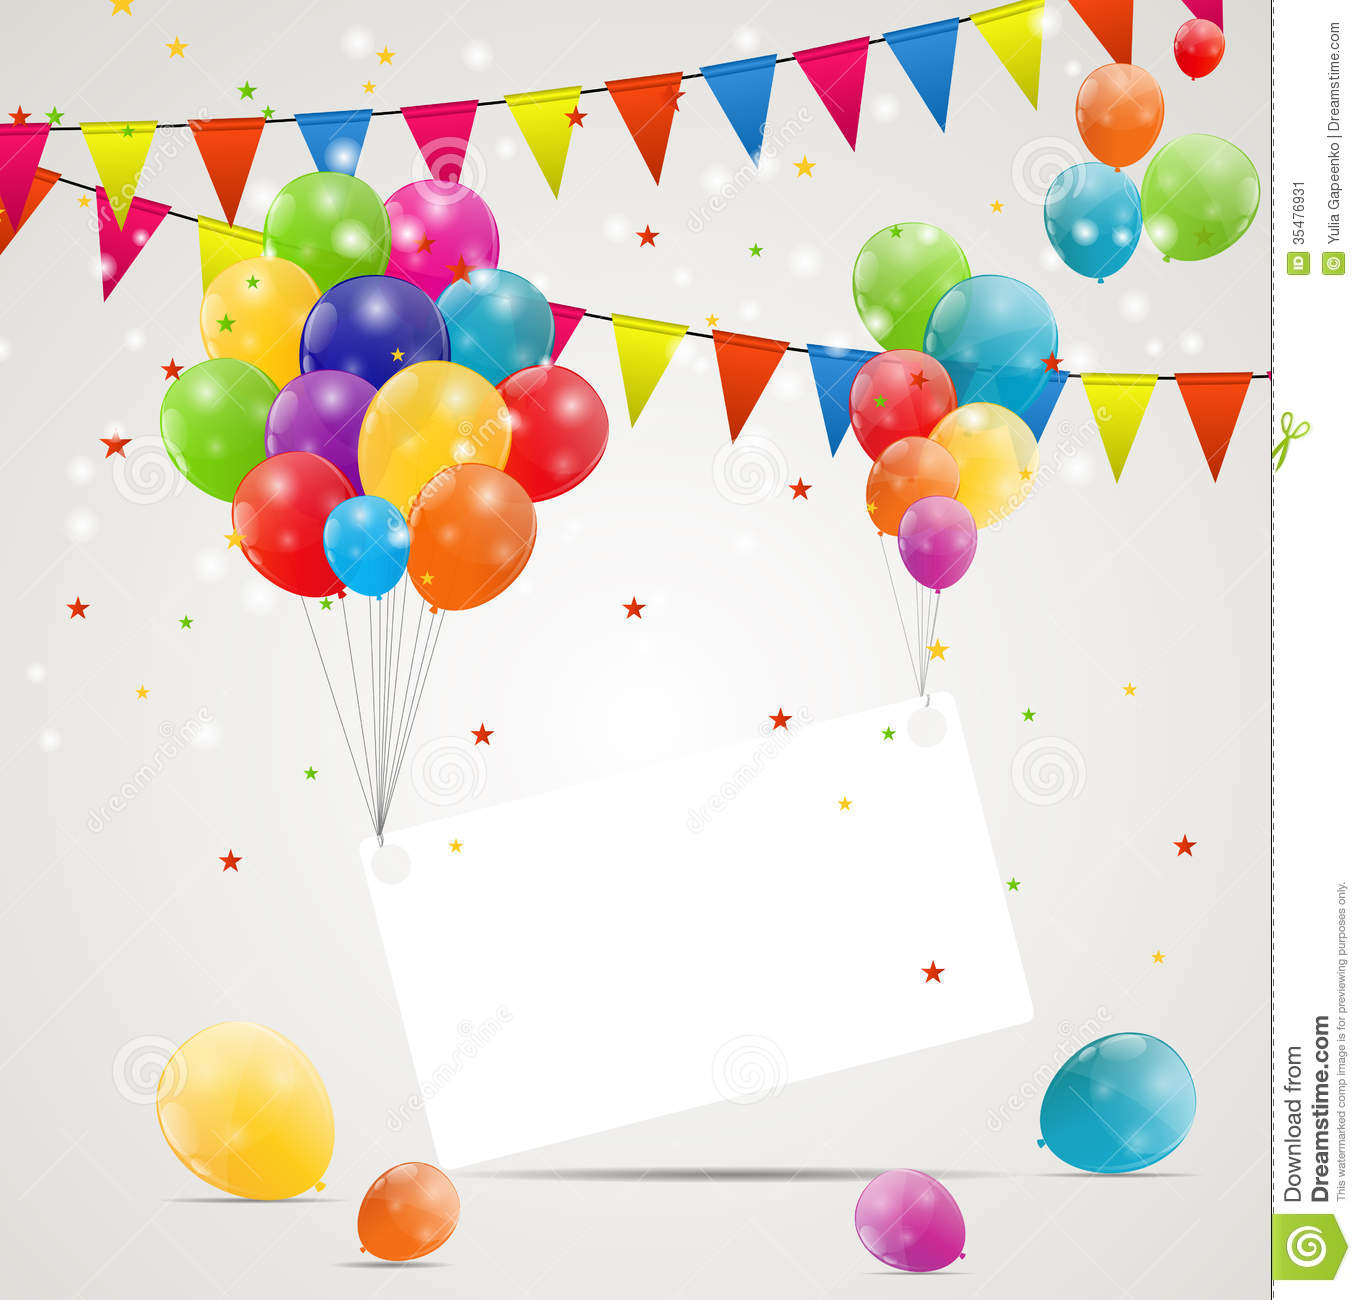 Color glossy balloons birthday card background stock vector color glossy balloons birthday card background banner festival bookmarktalkfo Choice Image